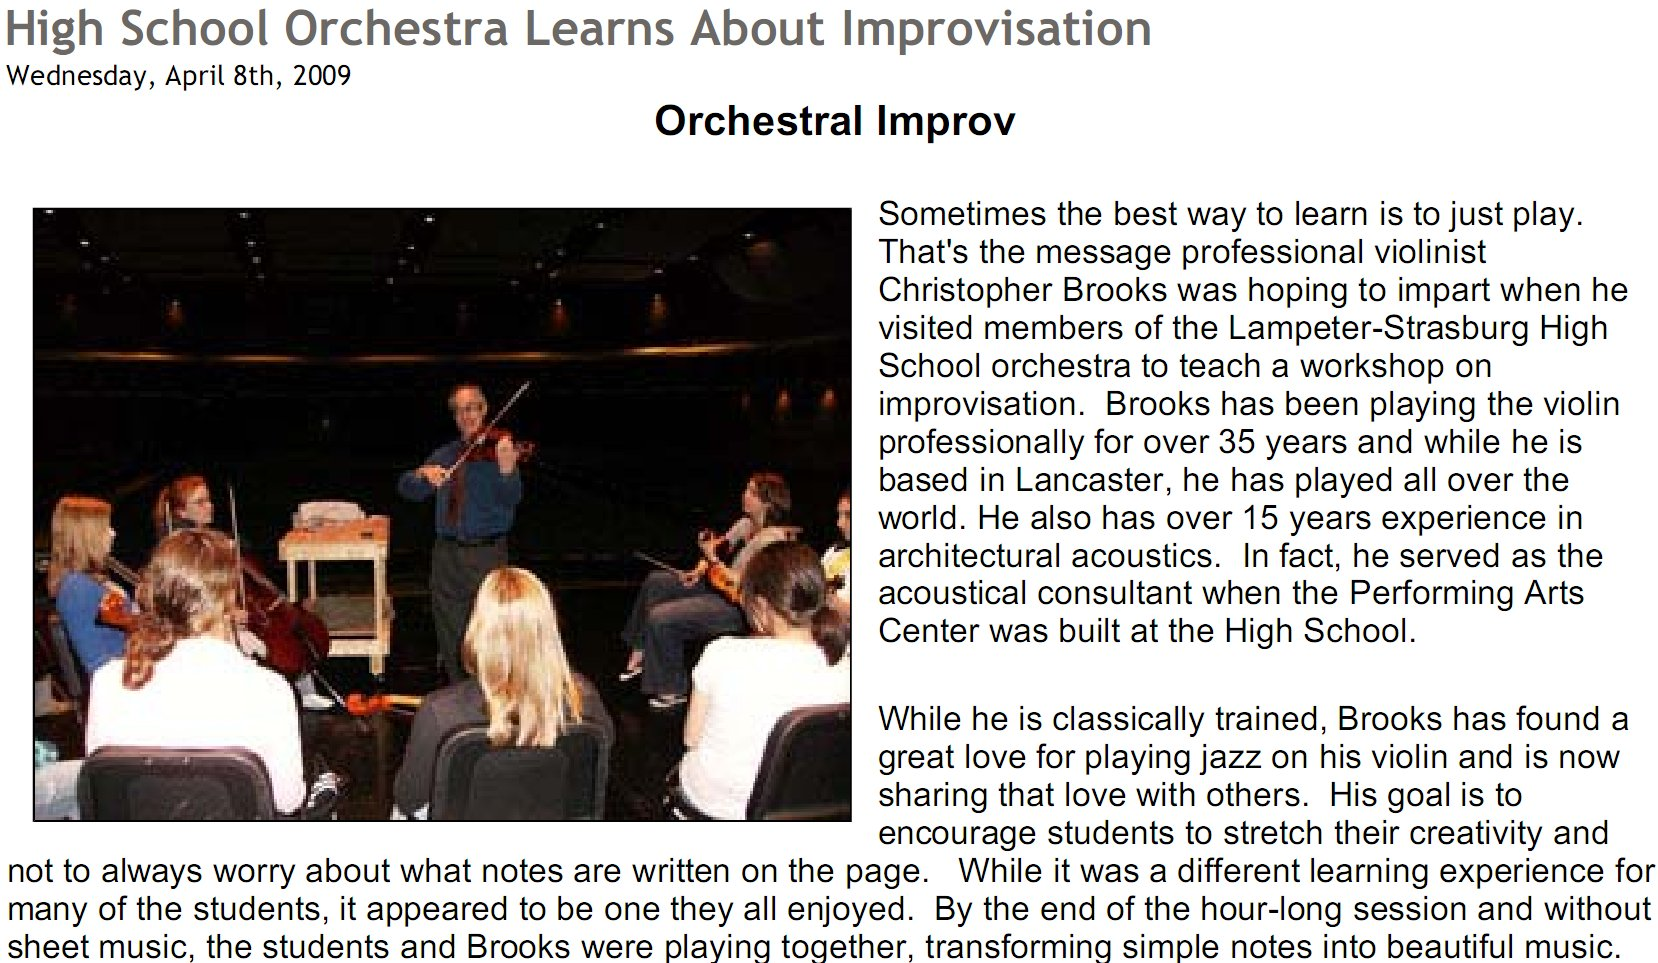 coaching orchestra class at Lampeter Strassburg HS